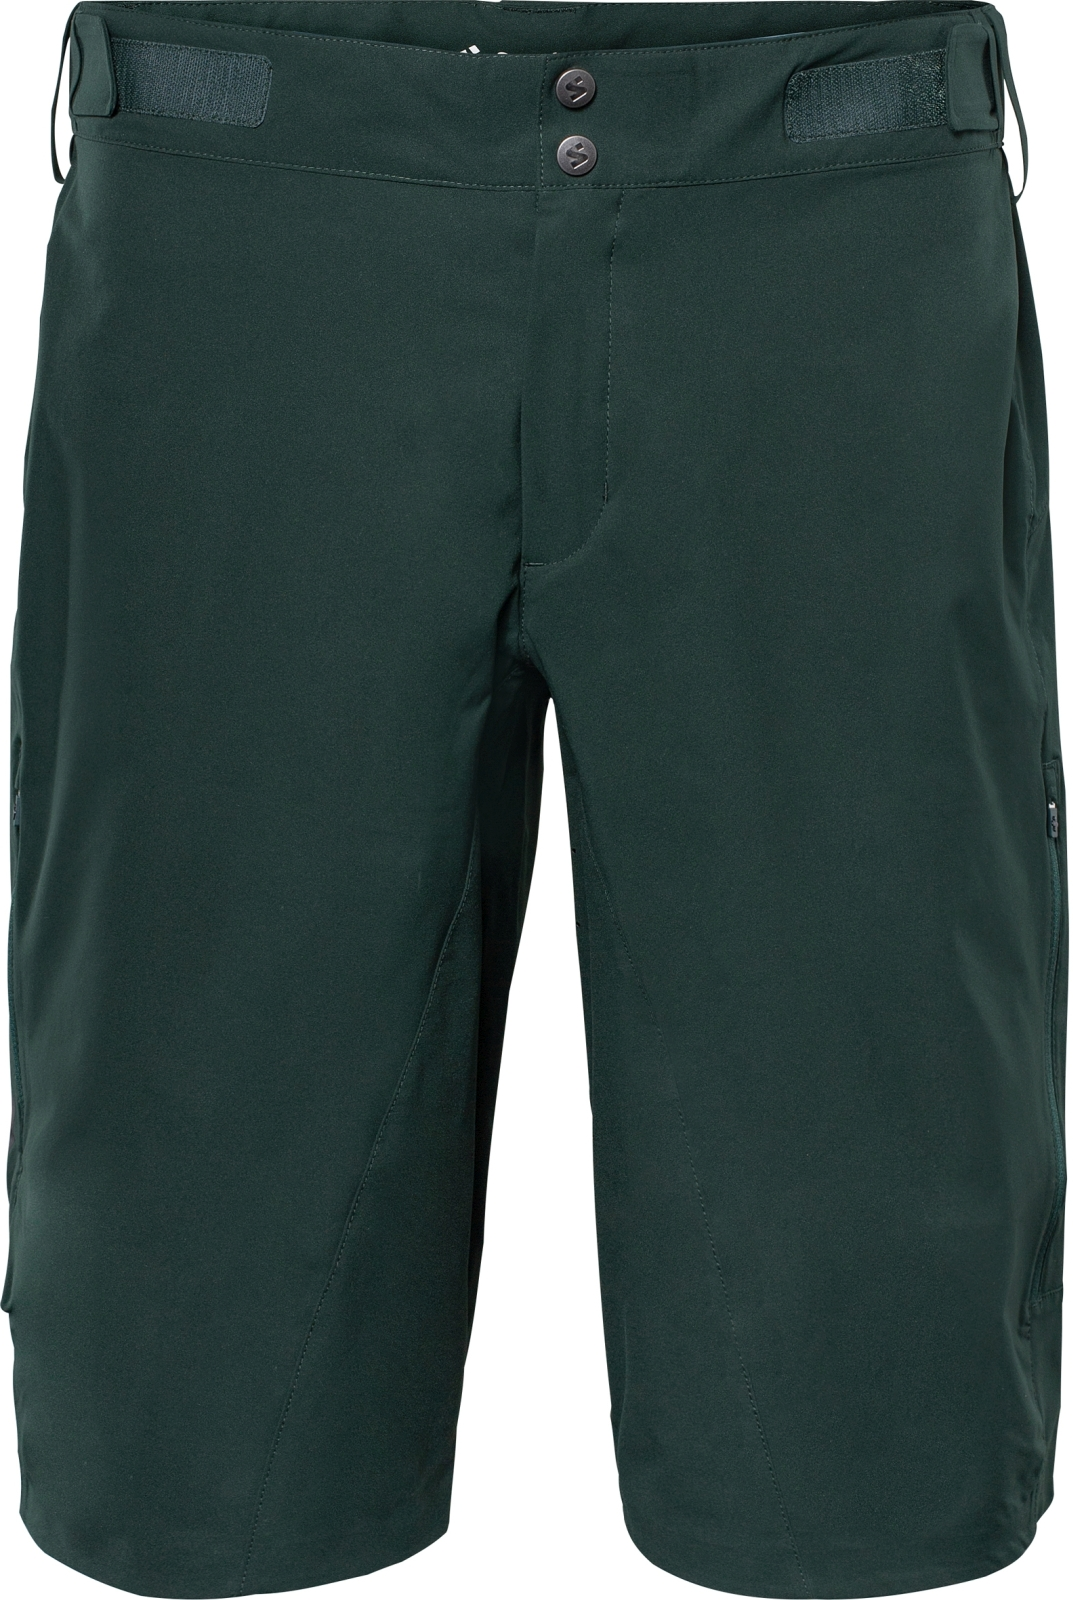 Sweet Protection Hunter Light Shorts M - forest green M